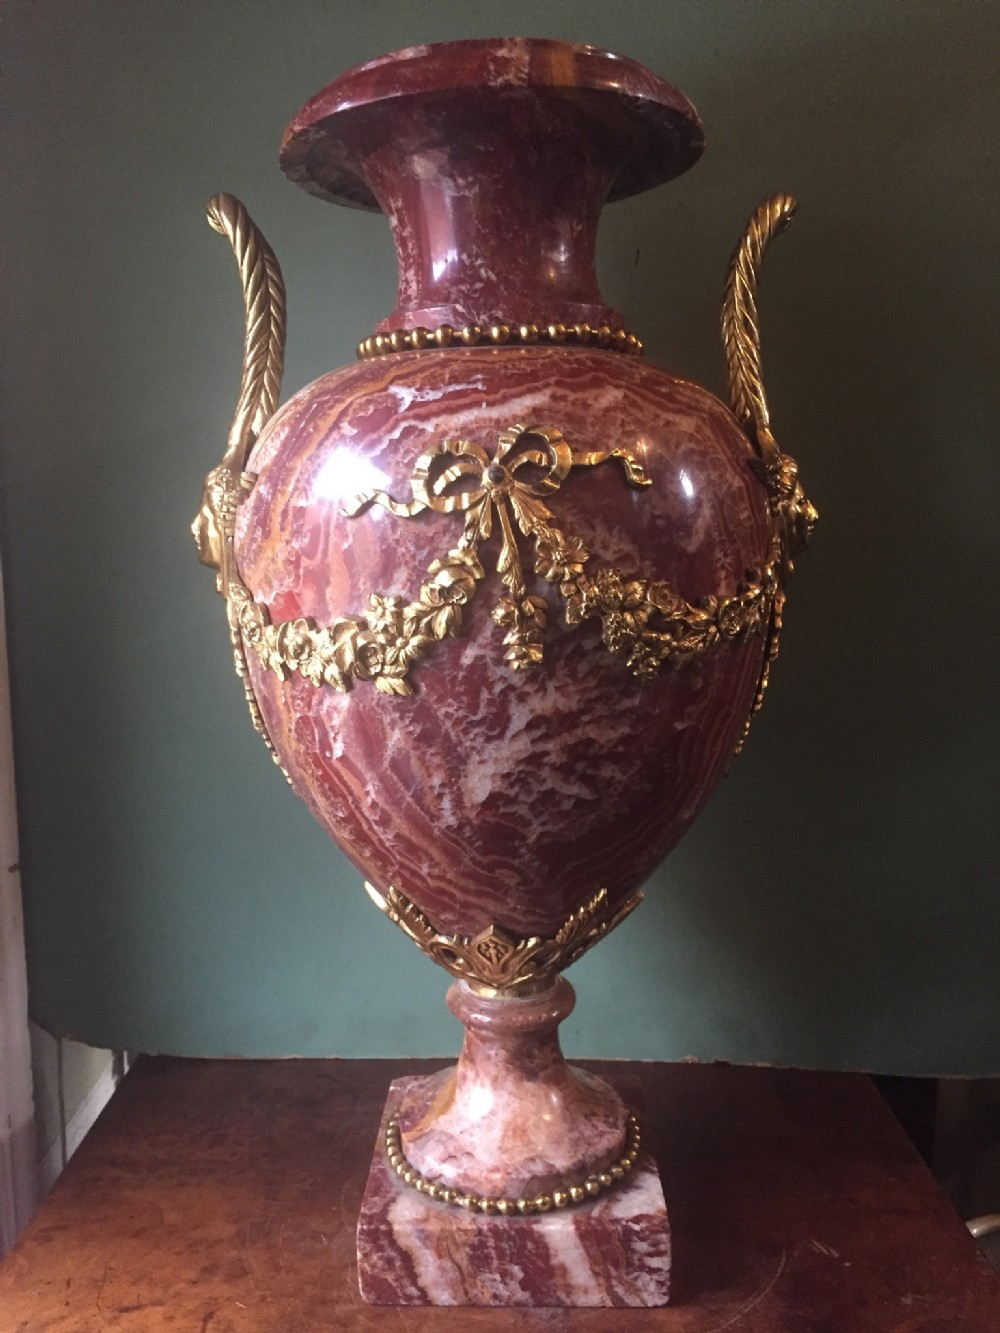 stunning late c19thearly c20th french ormolumounted rouge marble vase of impressive scale